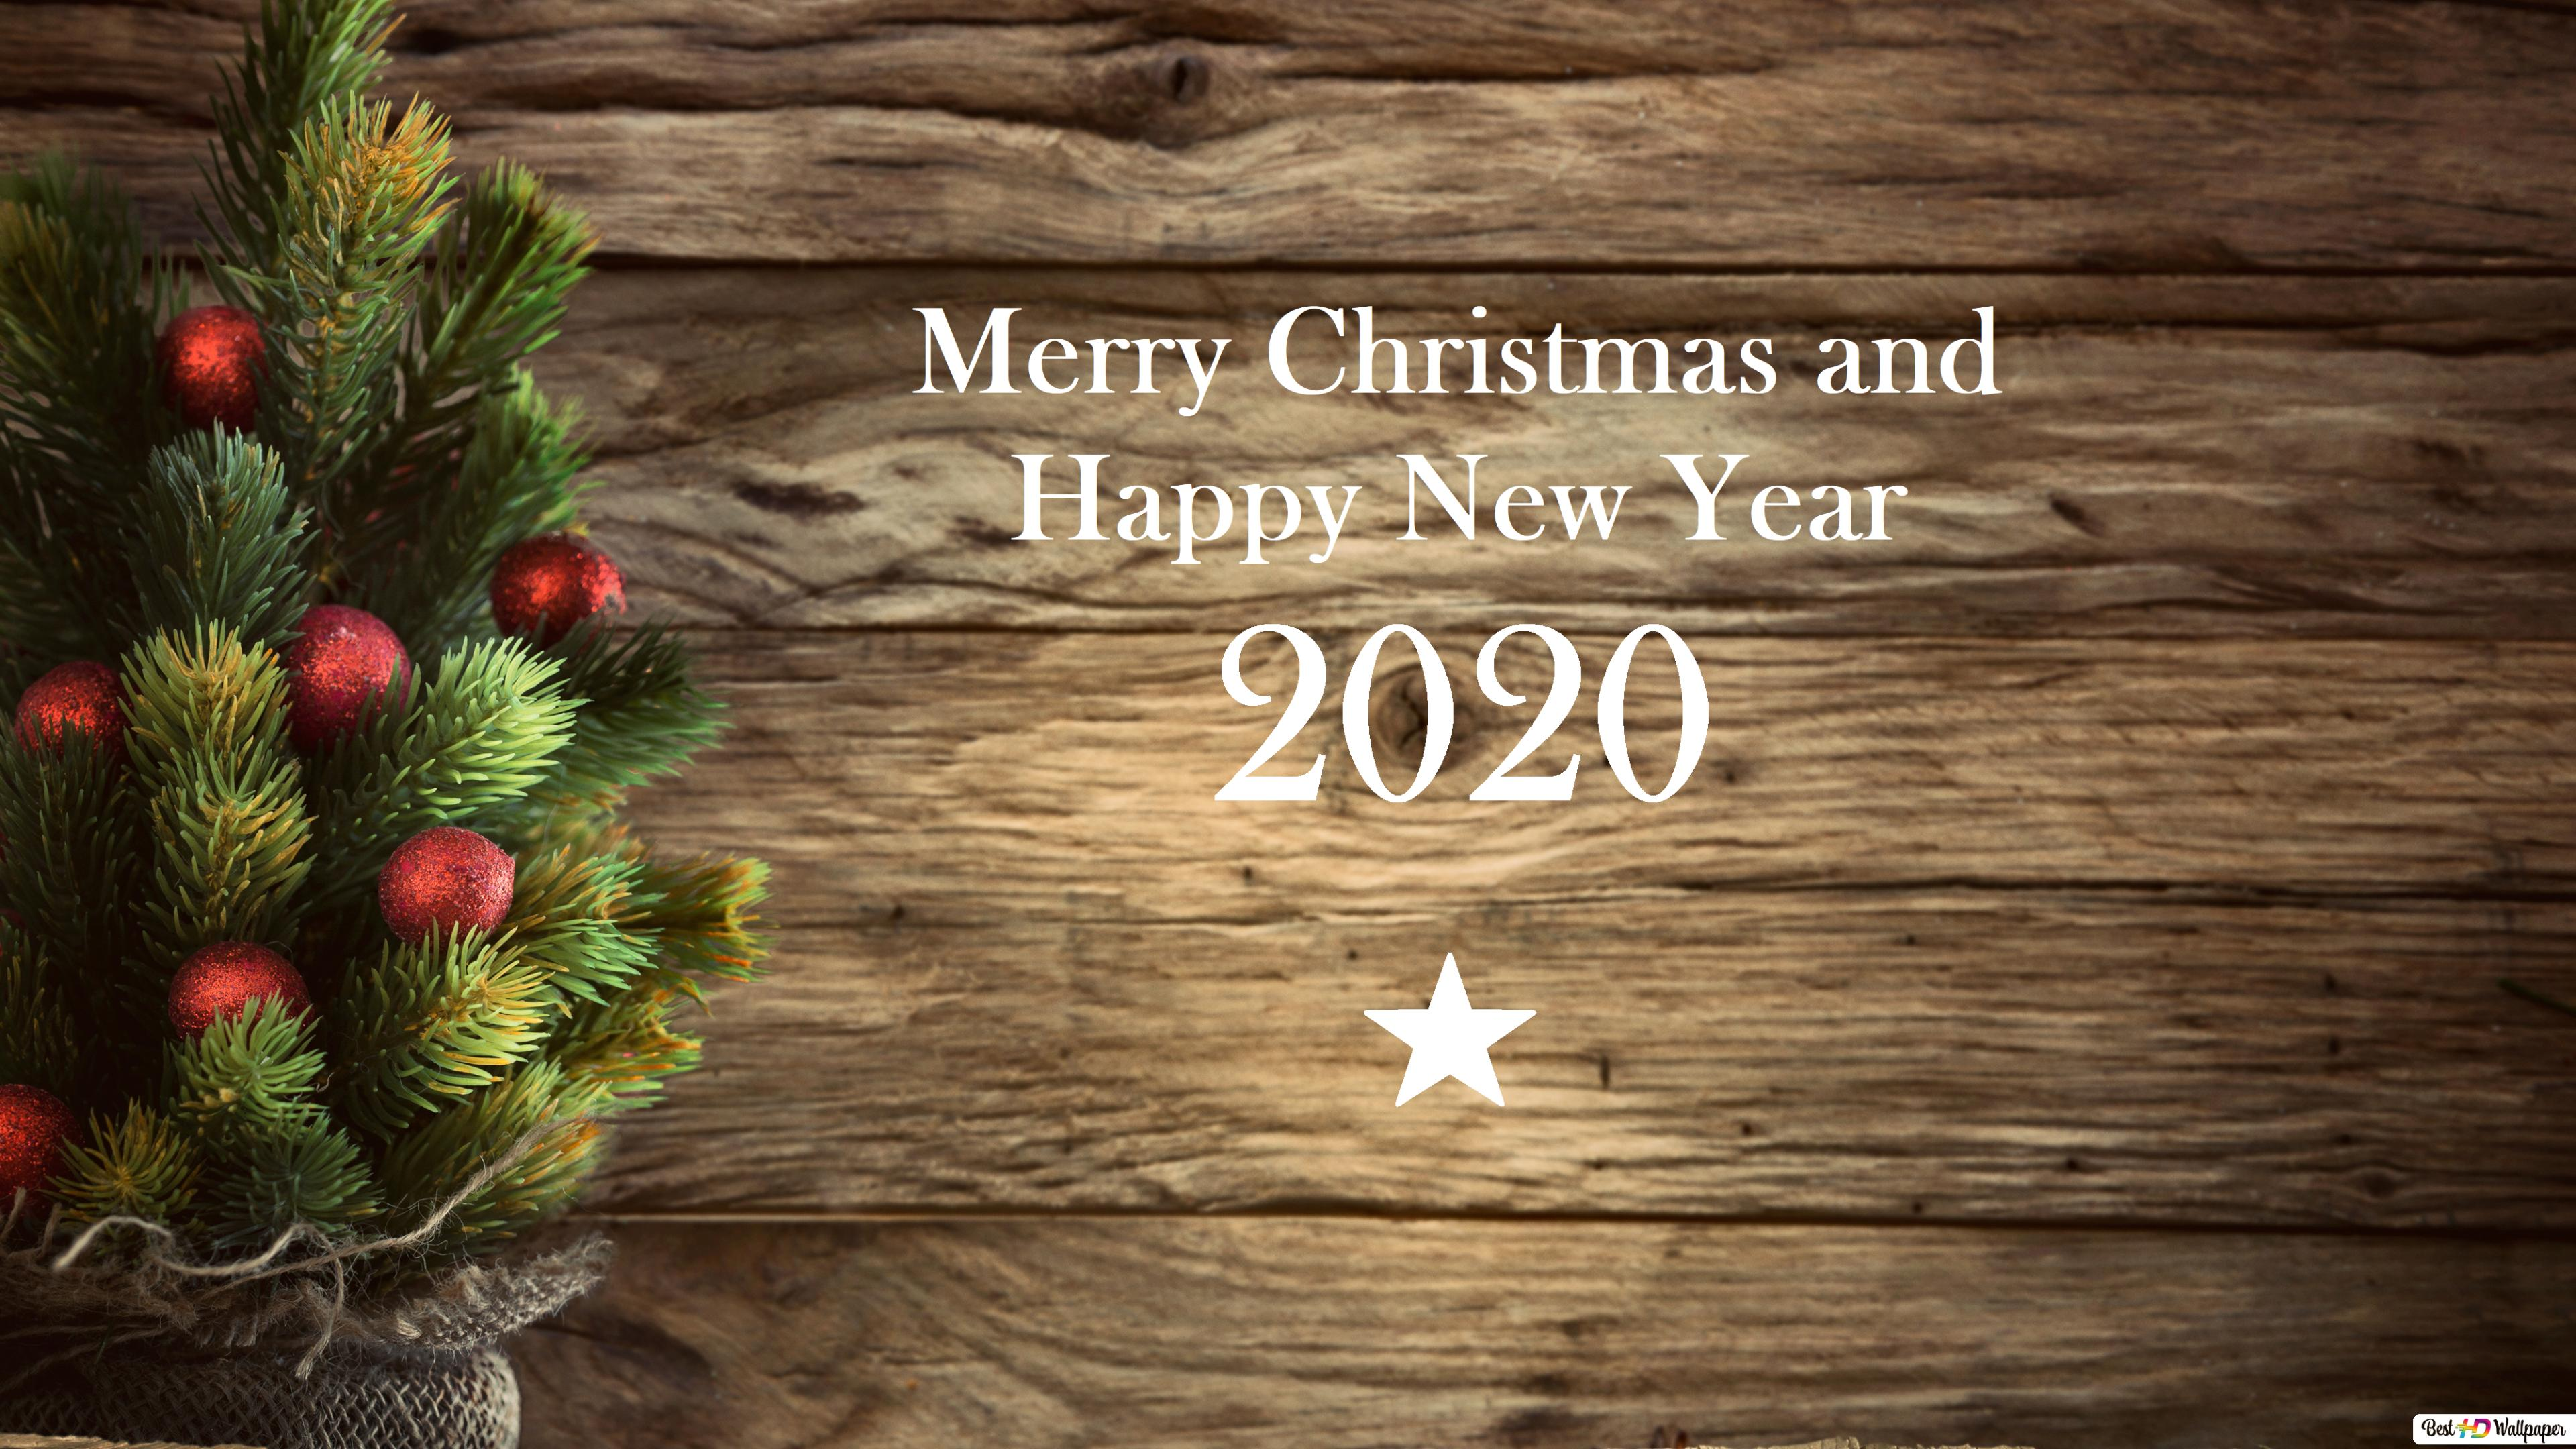 2021 Happy Merry Christmas And Happy New Year Wallpaper Lake Up In Mountain Merry Xmas Happy New Year 2020 Hd Wallpaper Download